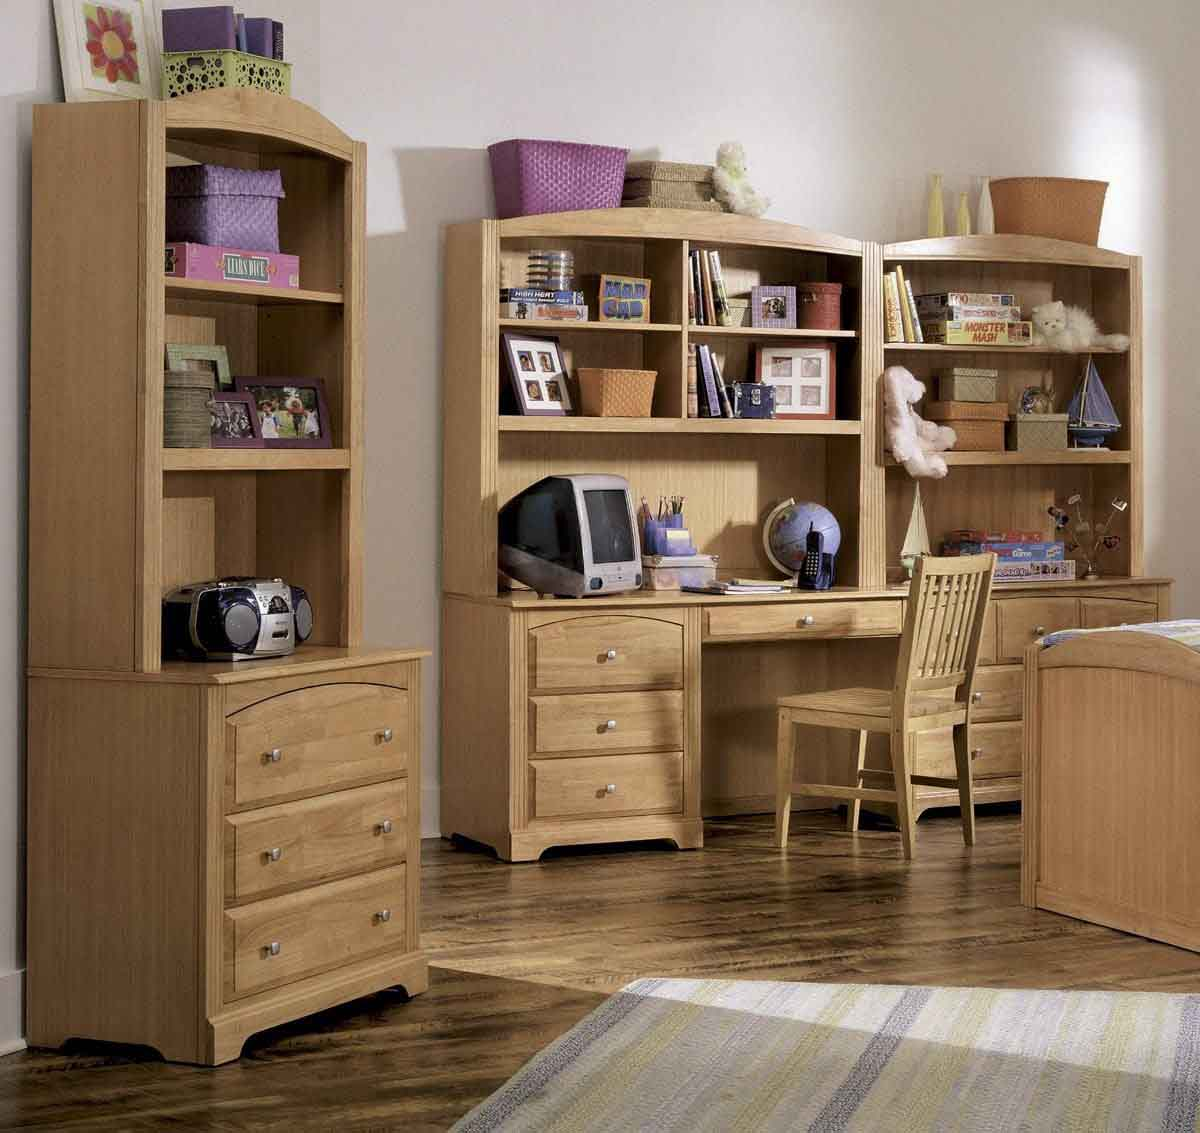 Wooden Bedroom Storage Furniture